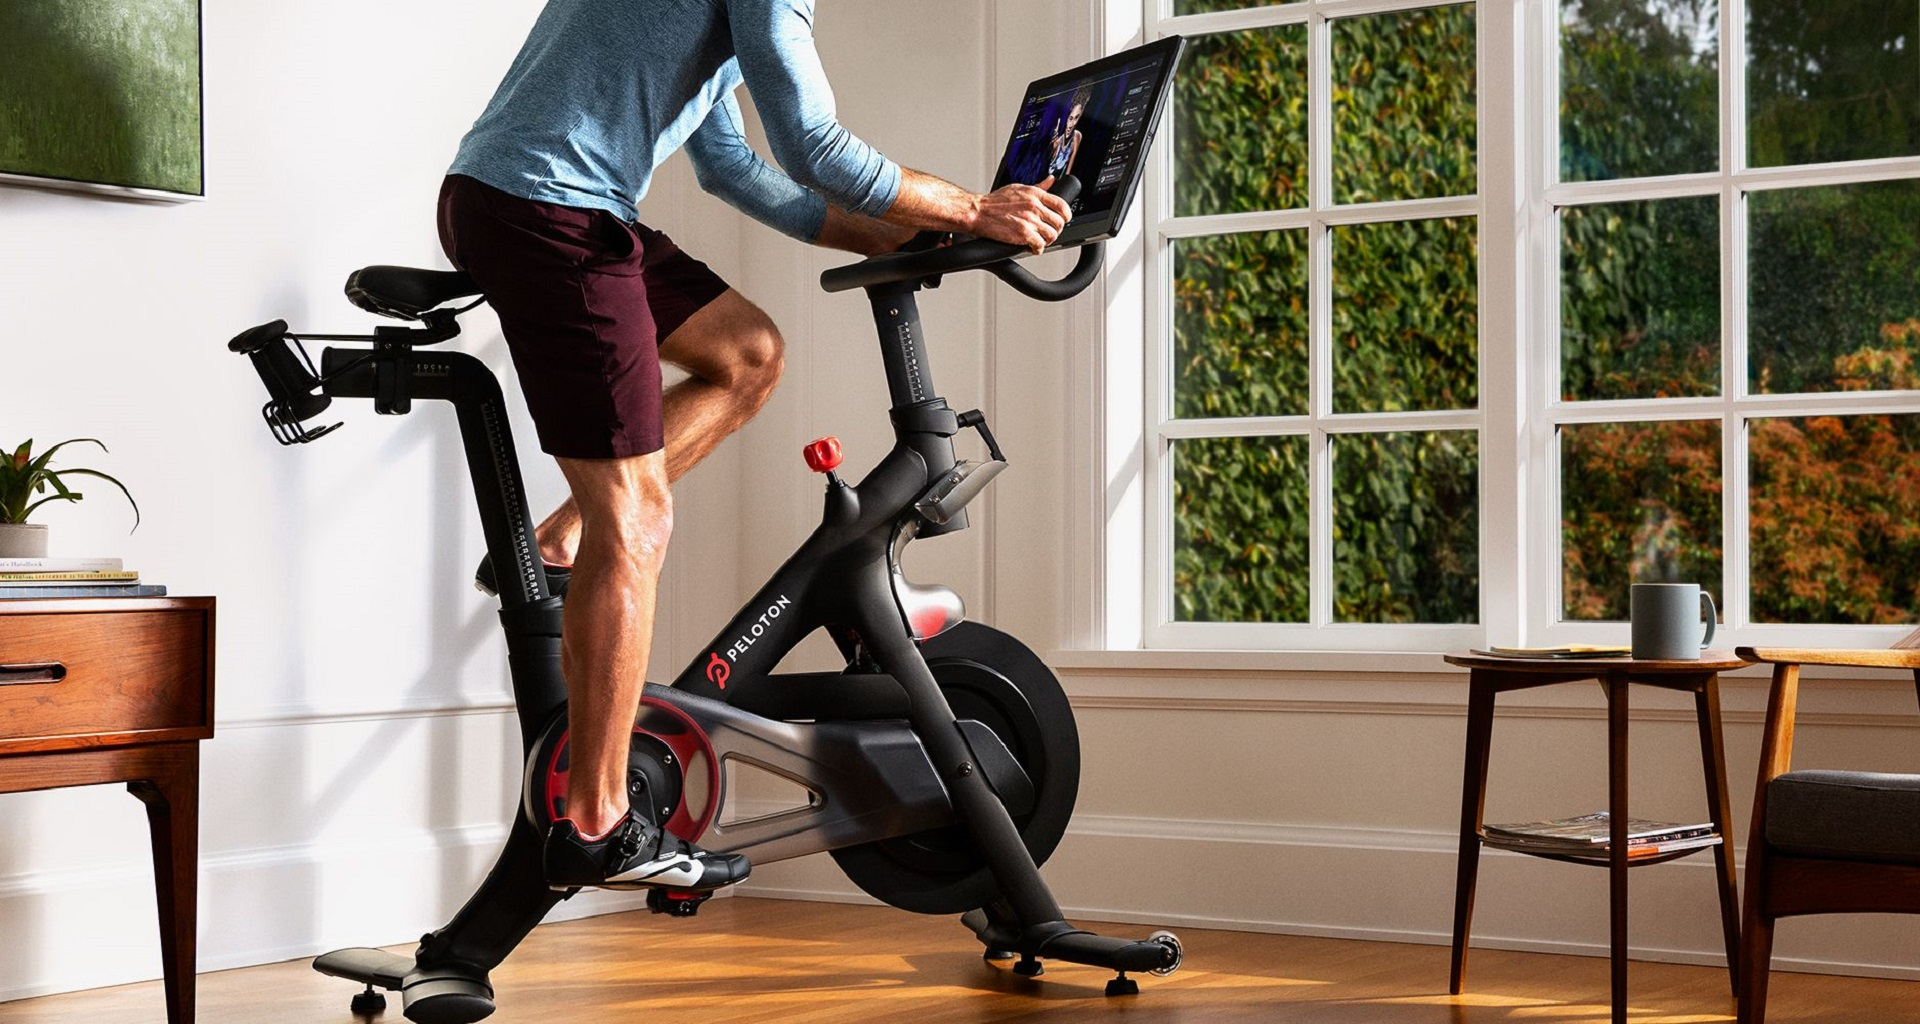 Cycling Shorts For Spin Bike Reviews